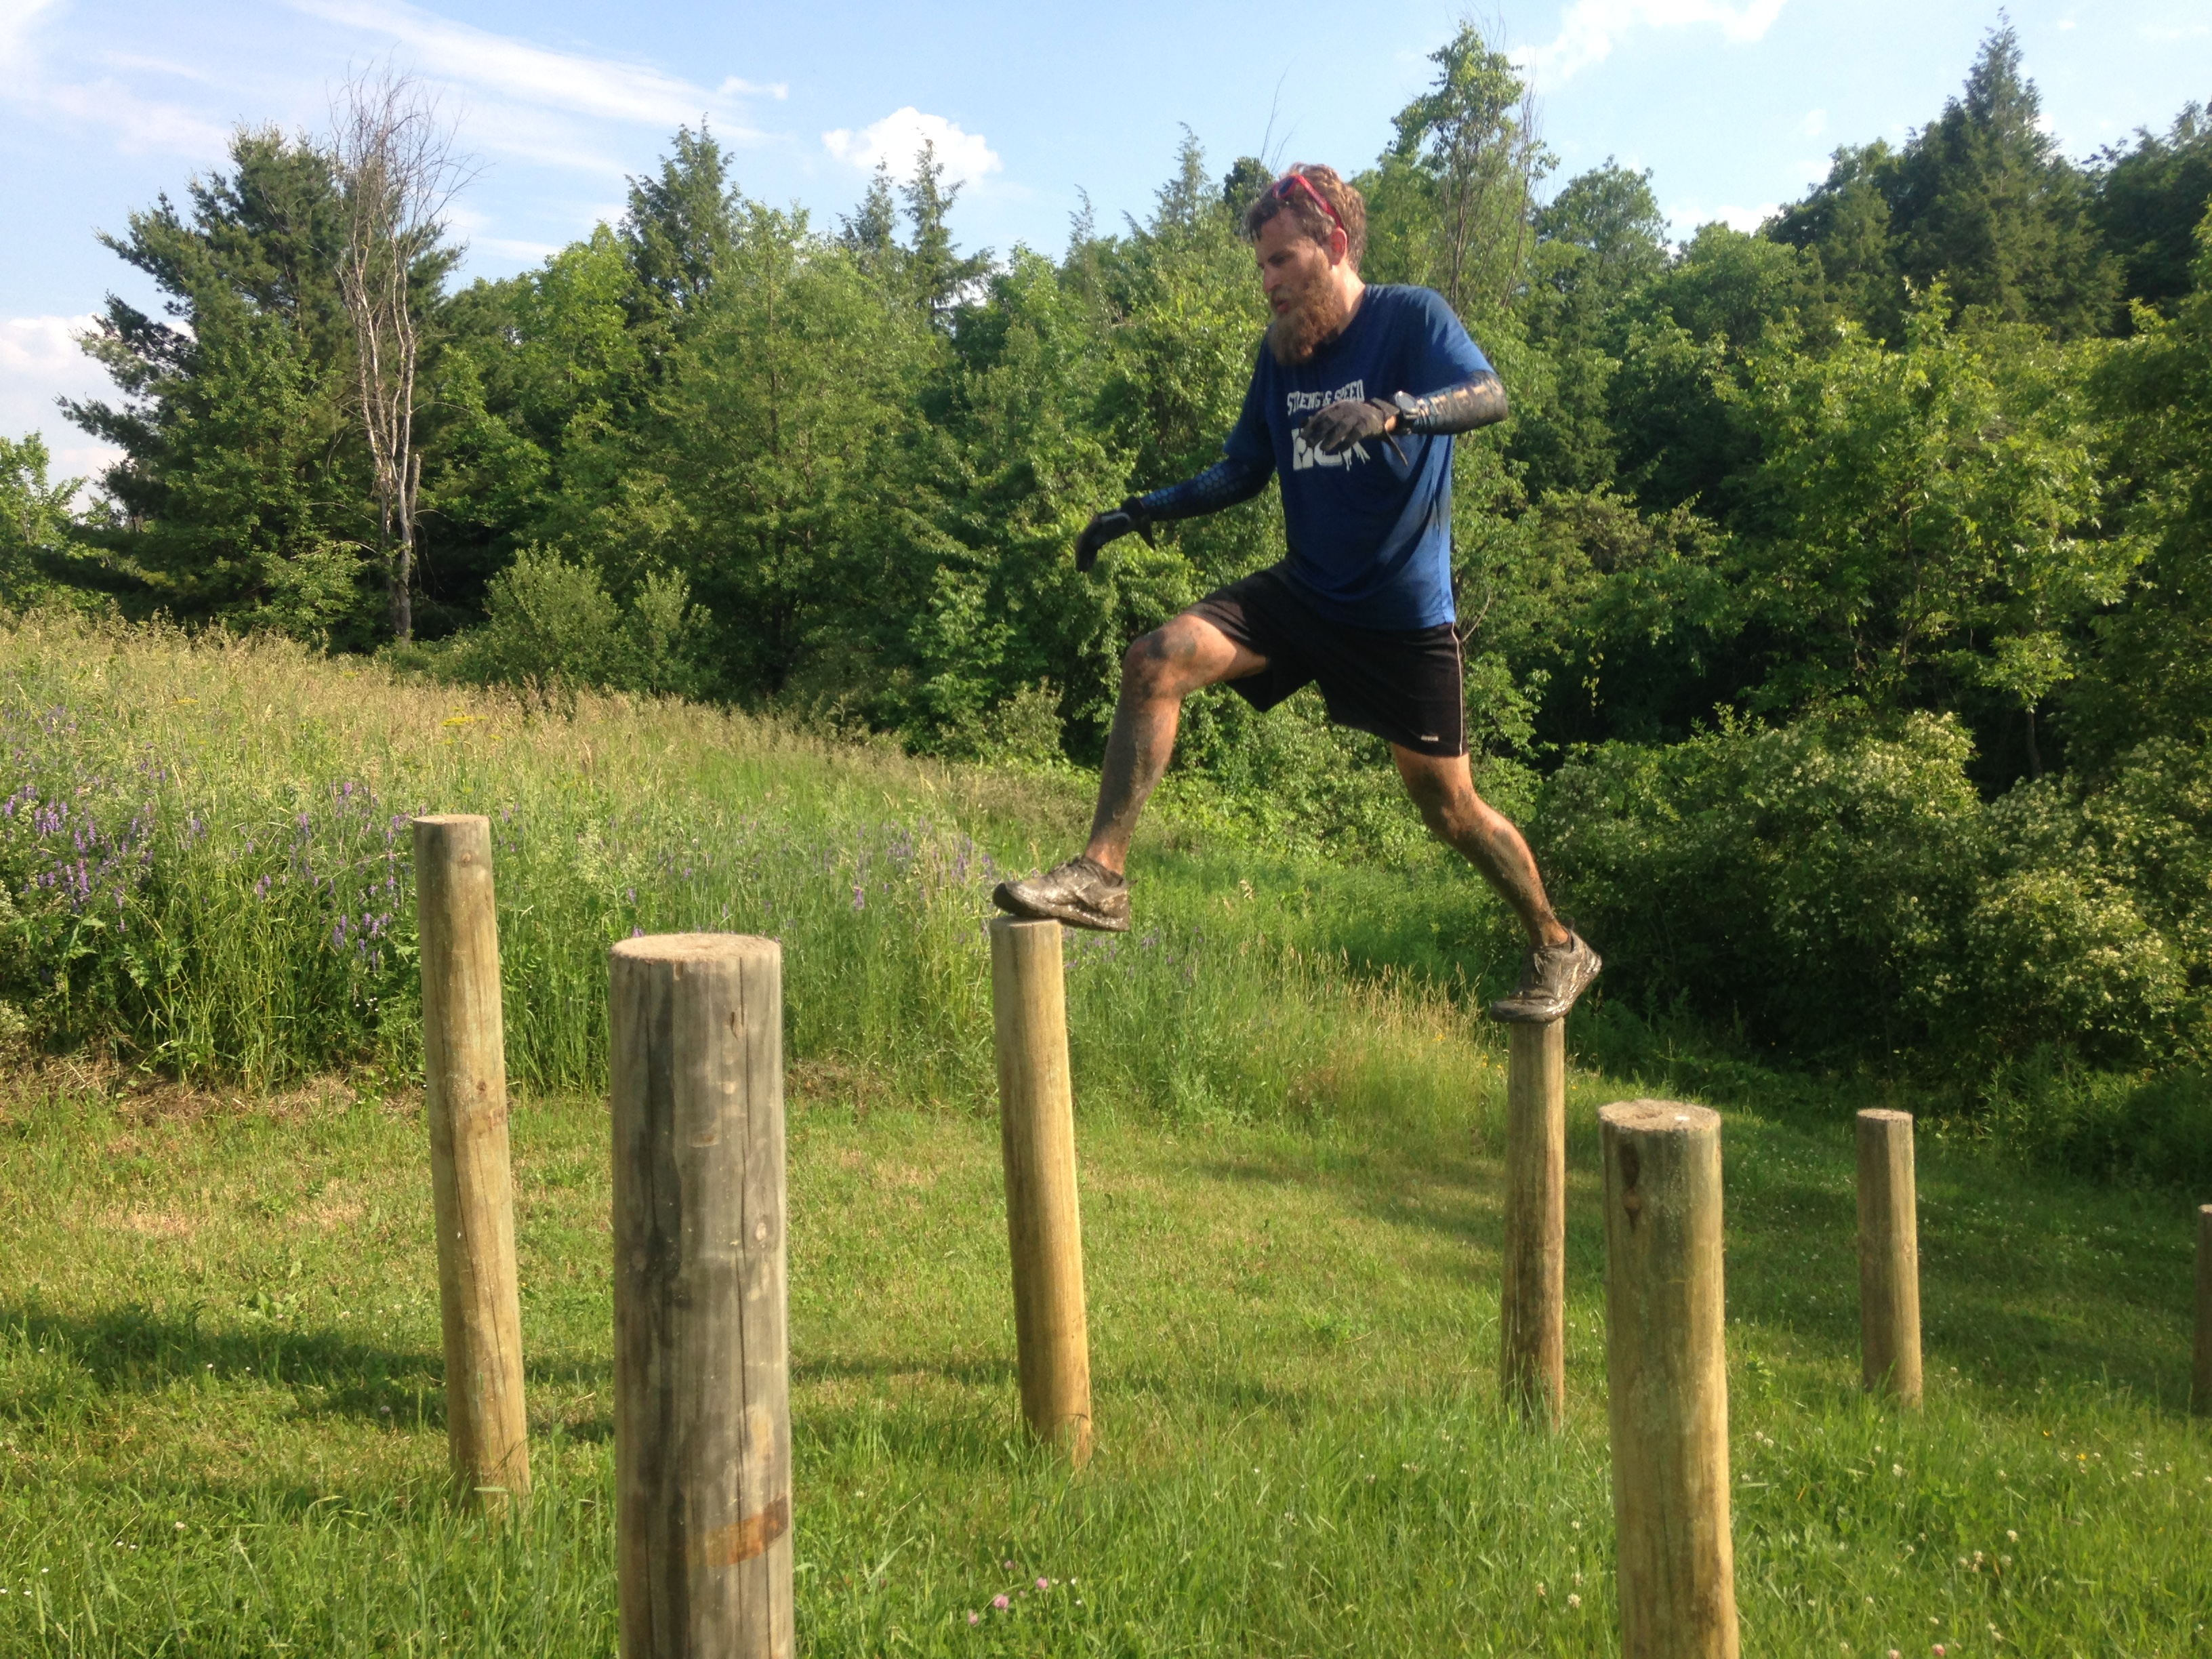 Jordan Smith was a crucial pacer during the event. He ran a total of 60 miles over four days of OCR.